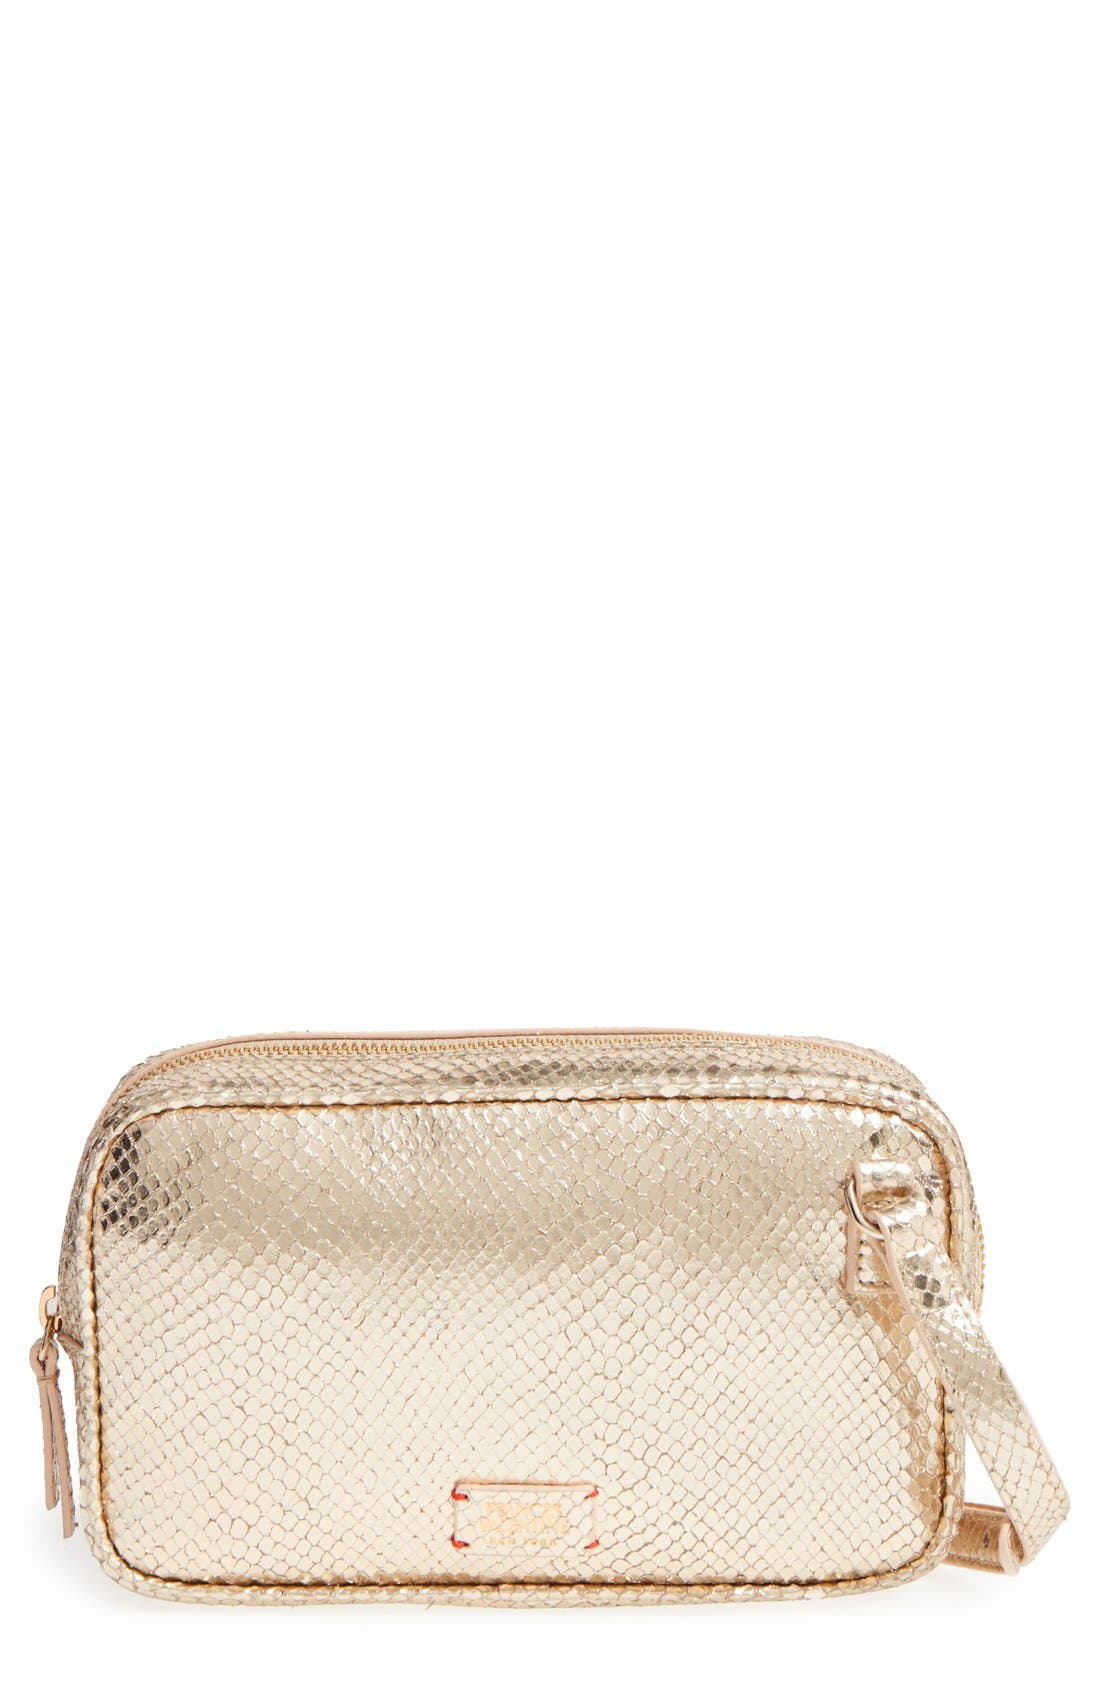 Frances Valentine 'Lucy' Metallic Leather Crossbody Bag